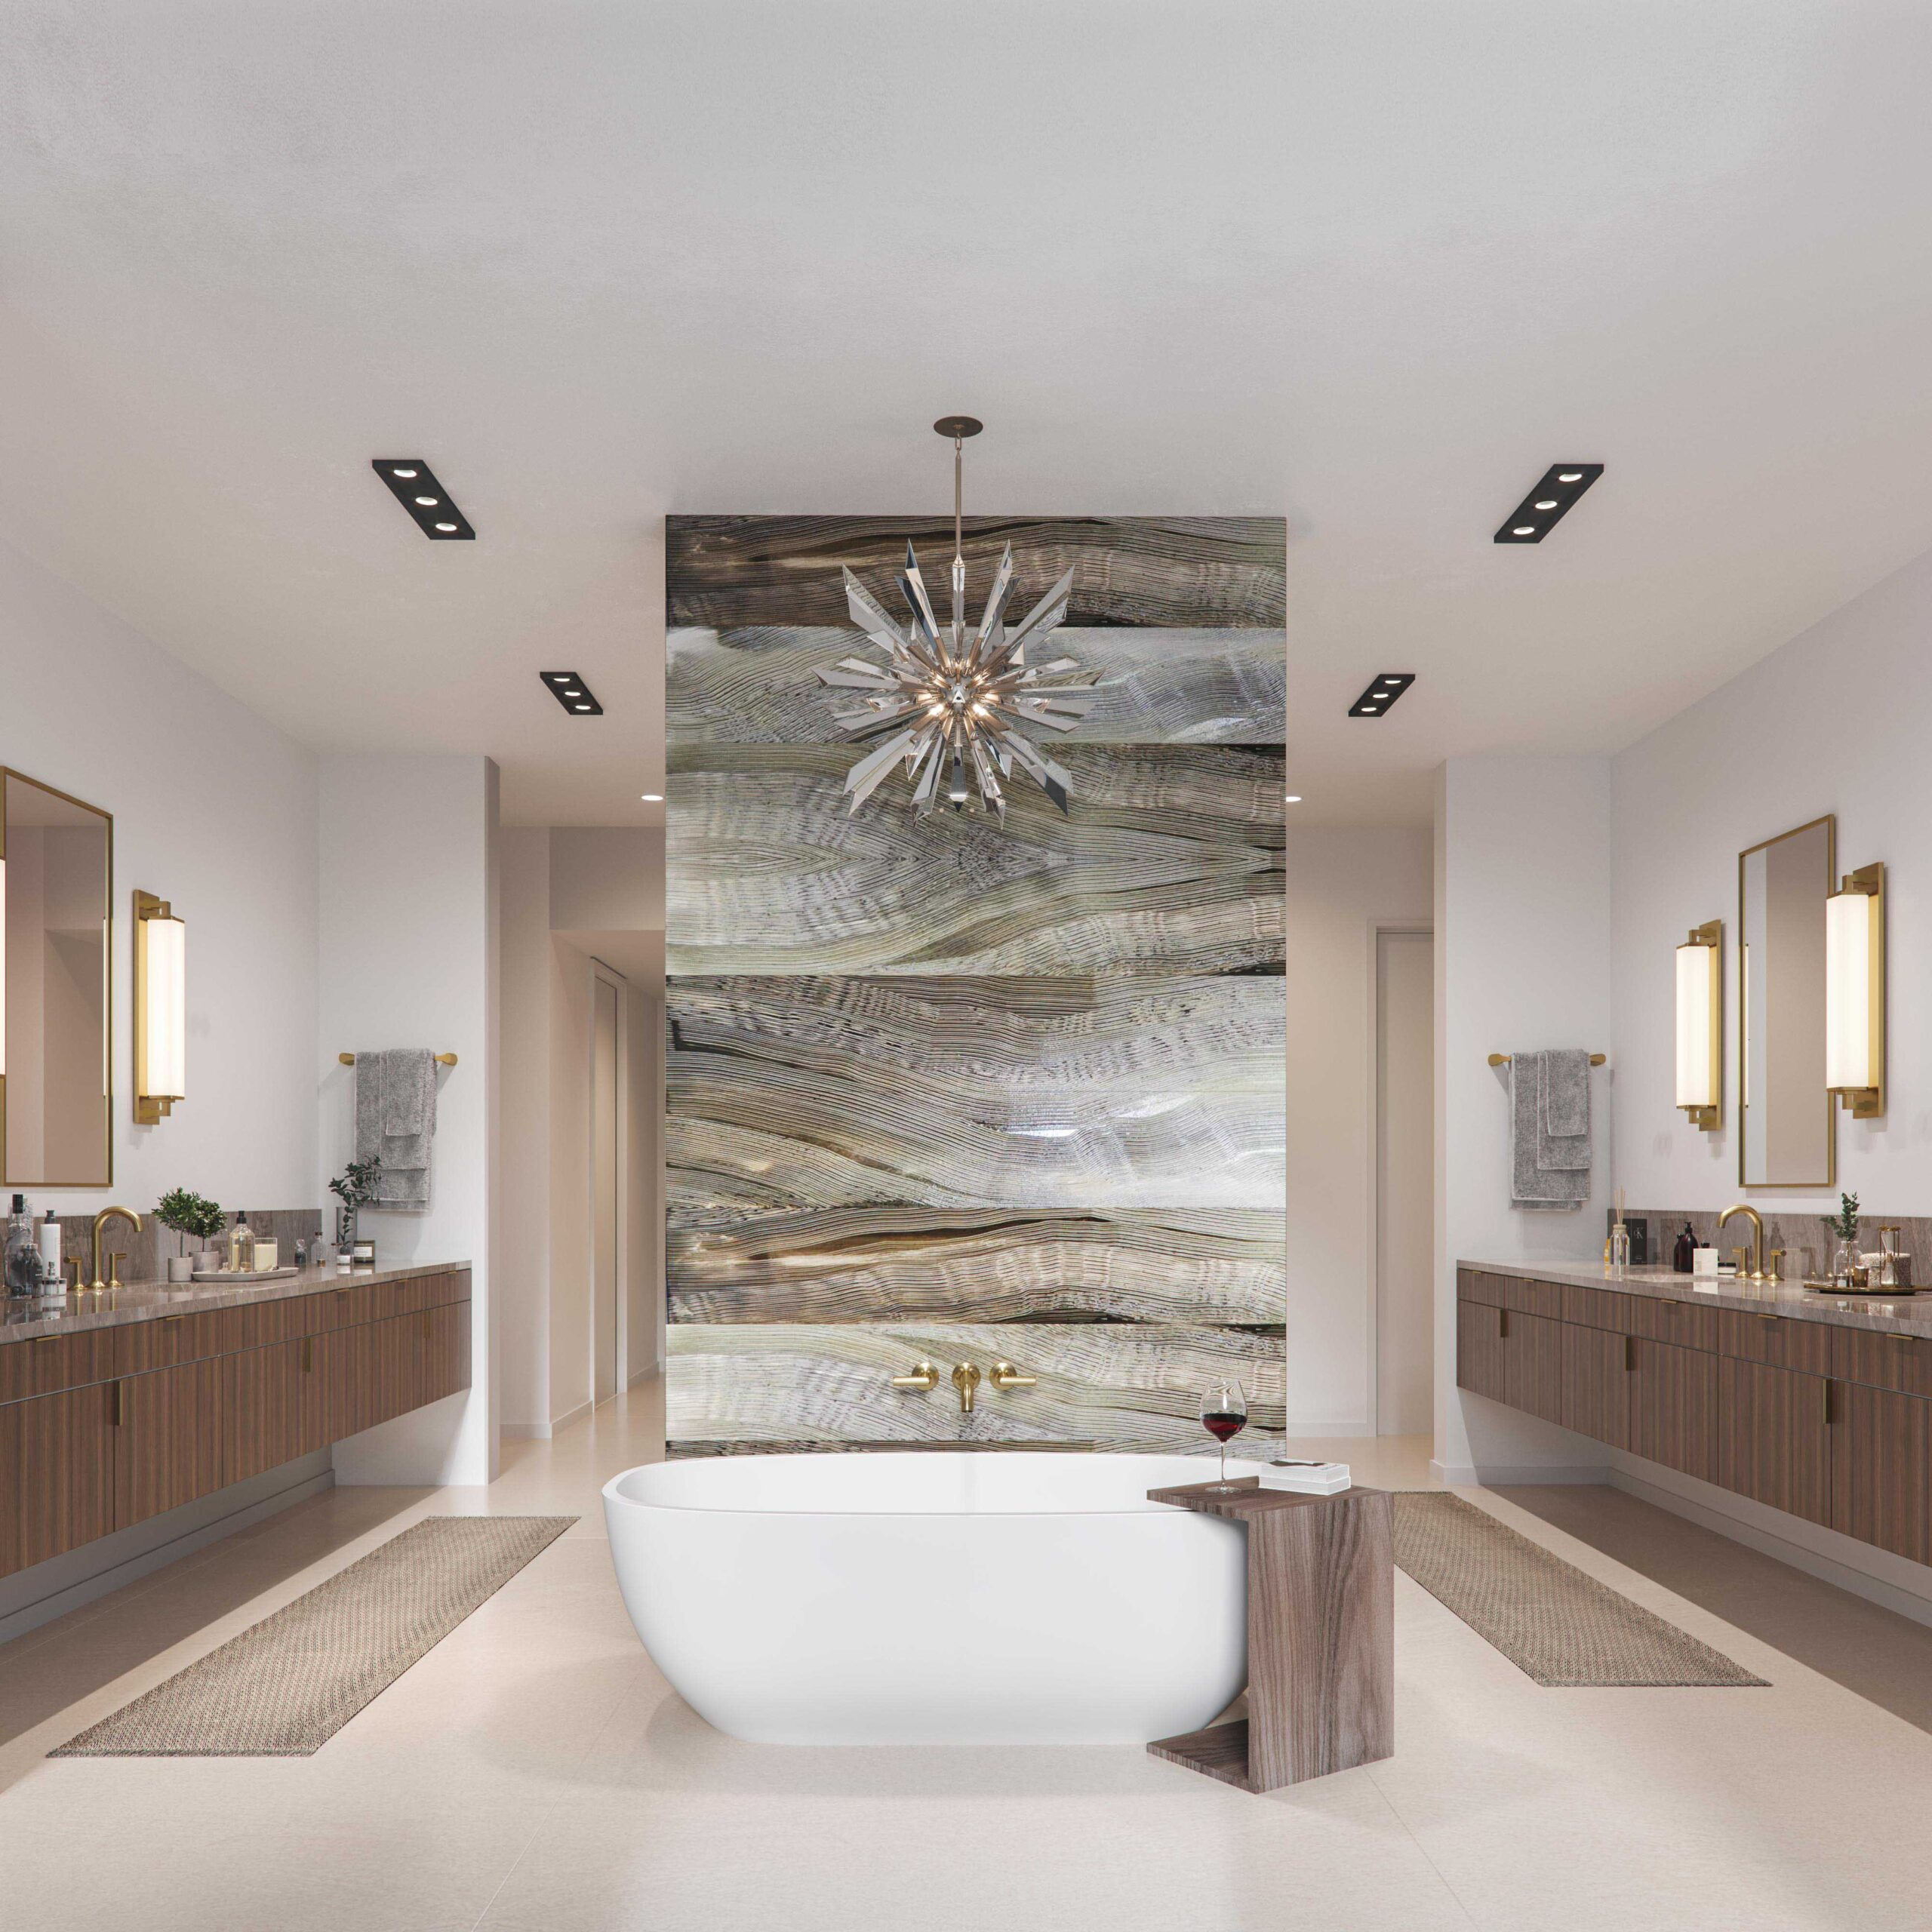 Penthouse master bath rendering, The Colorfield.